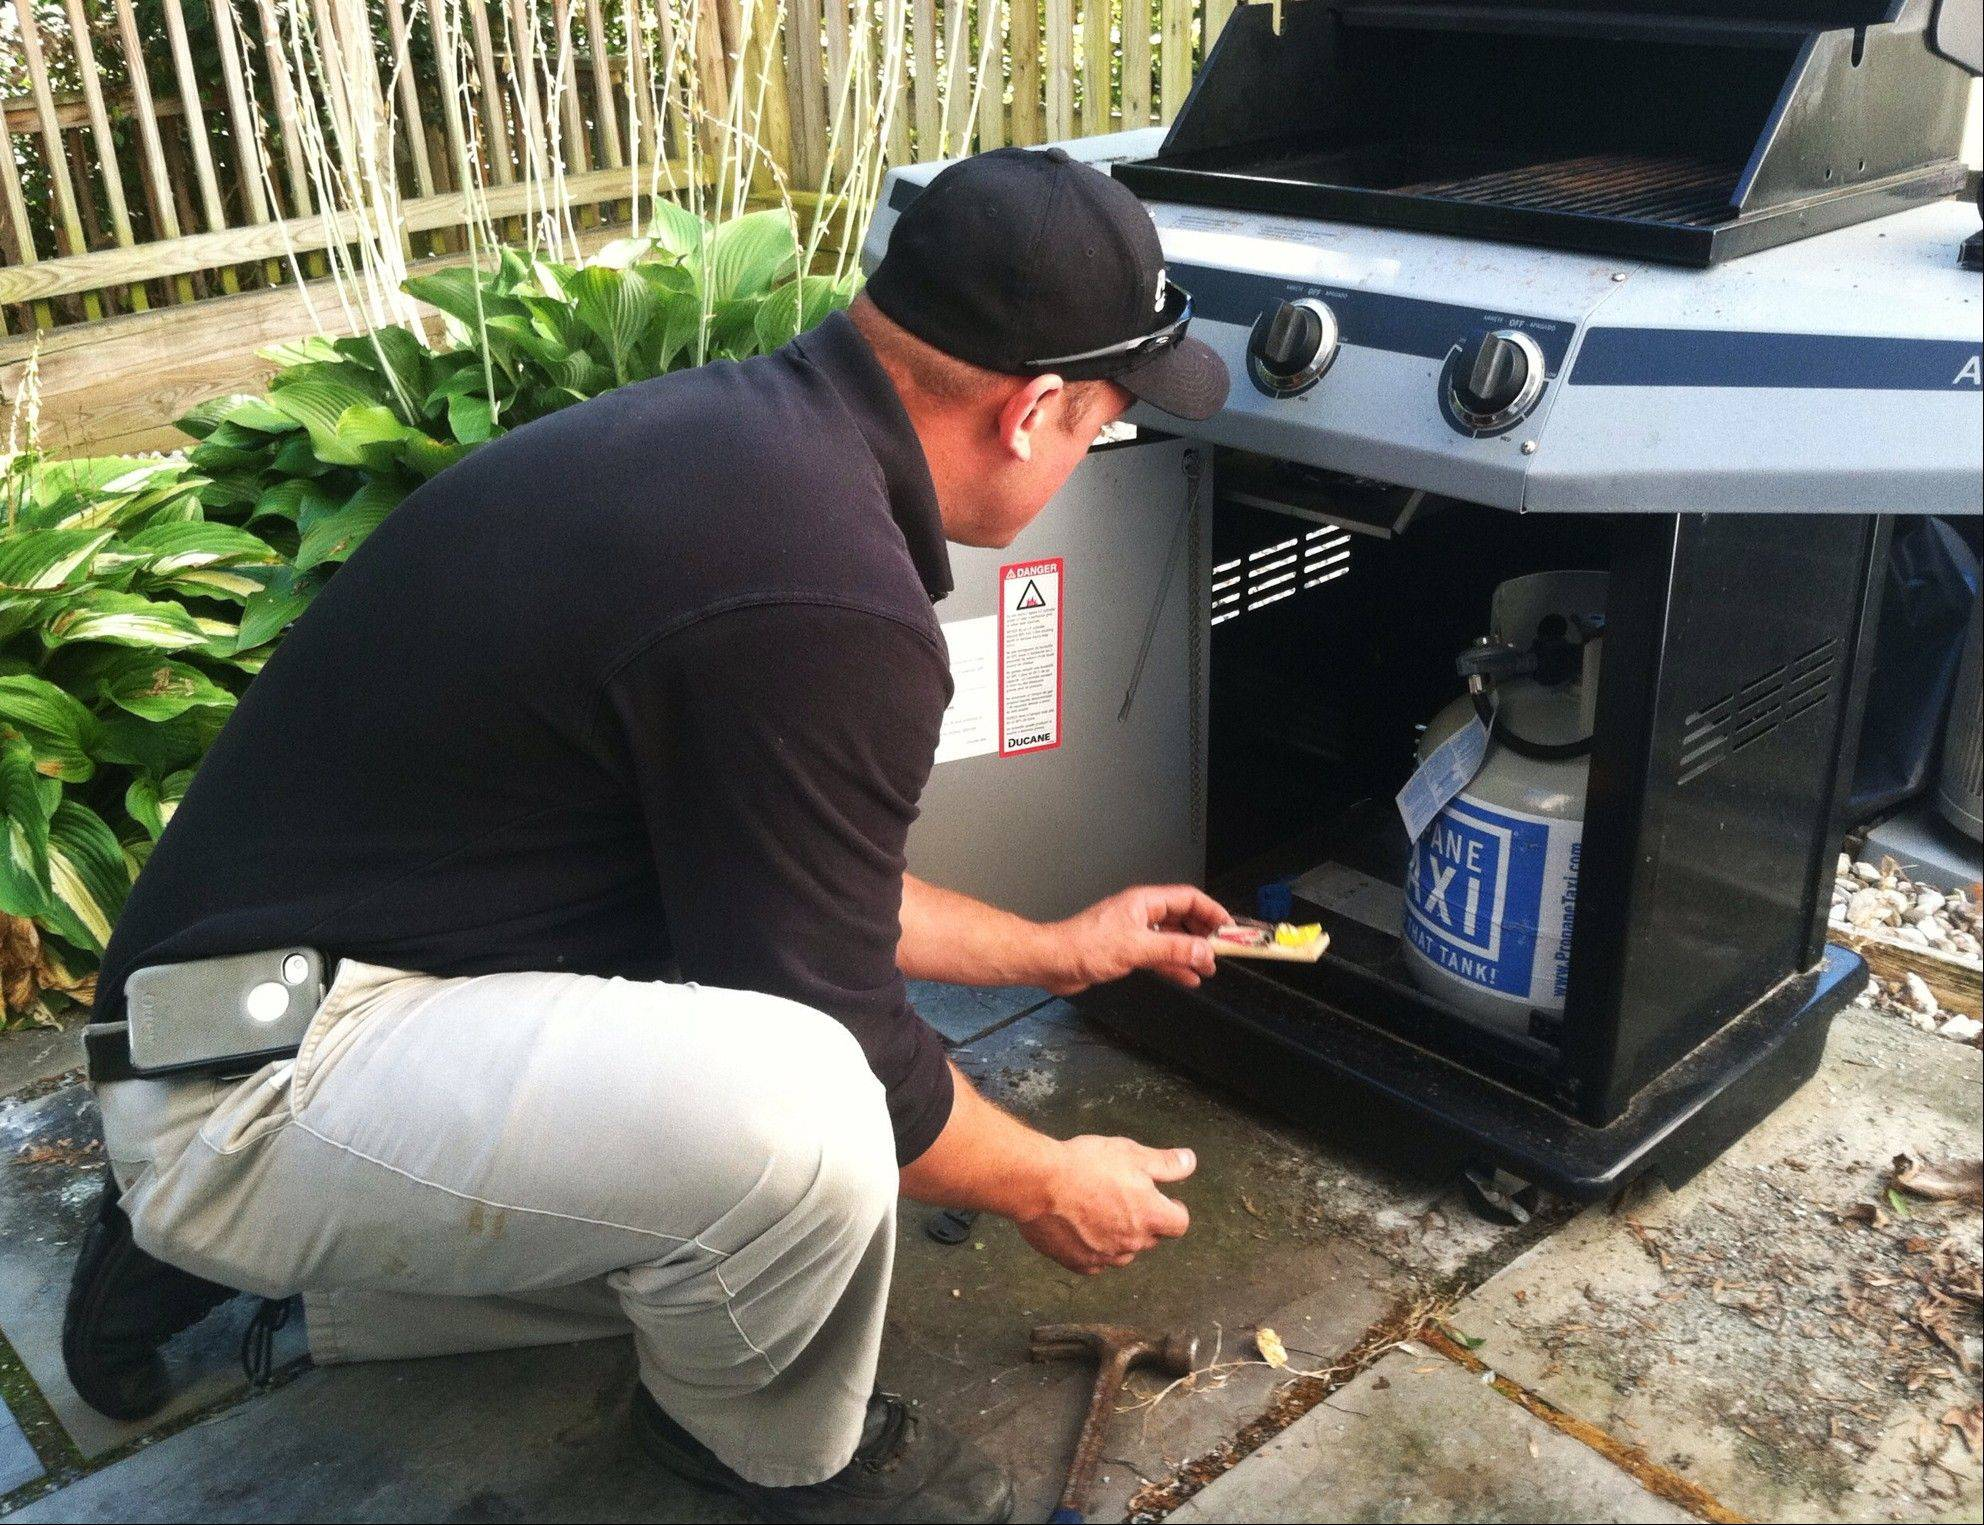 PestNow technician Shane Flanagan sets mouse traps and bait stations on the deck of a home in Rockville, Md.